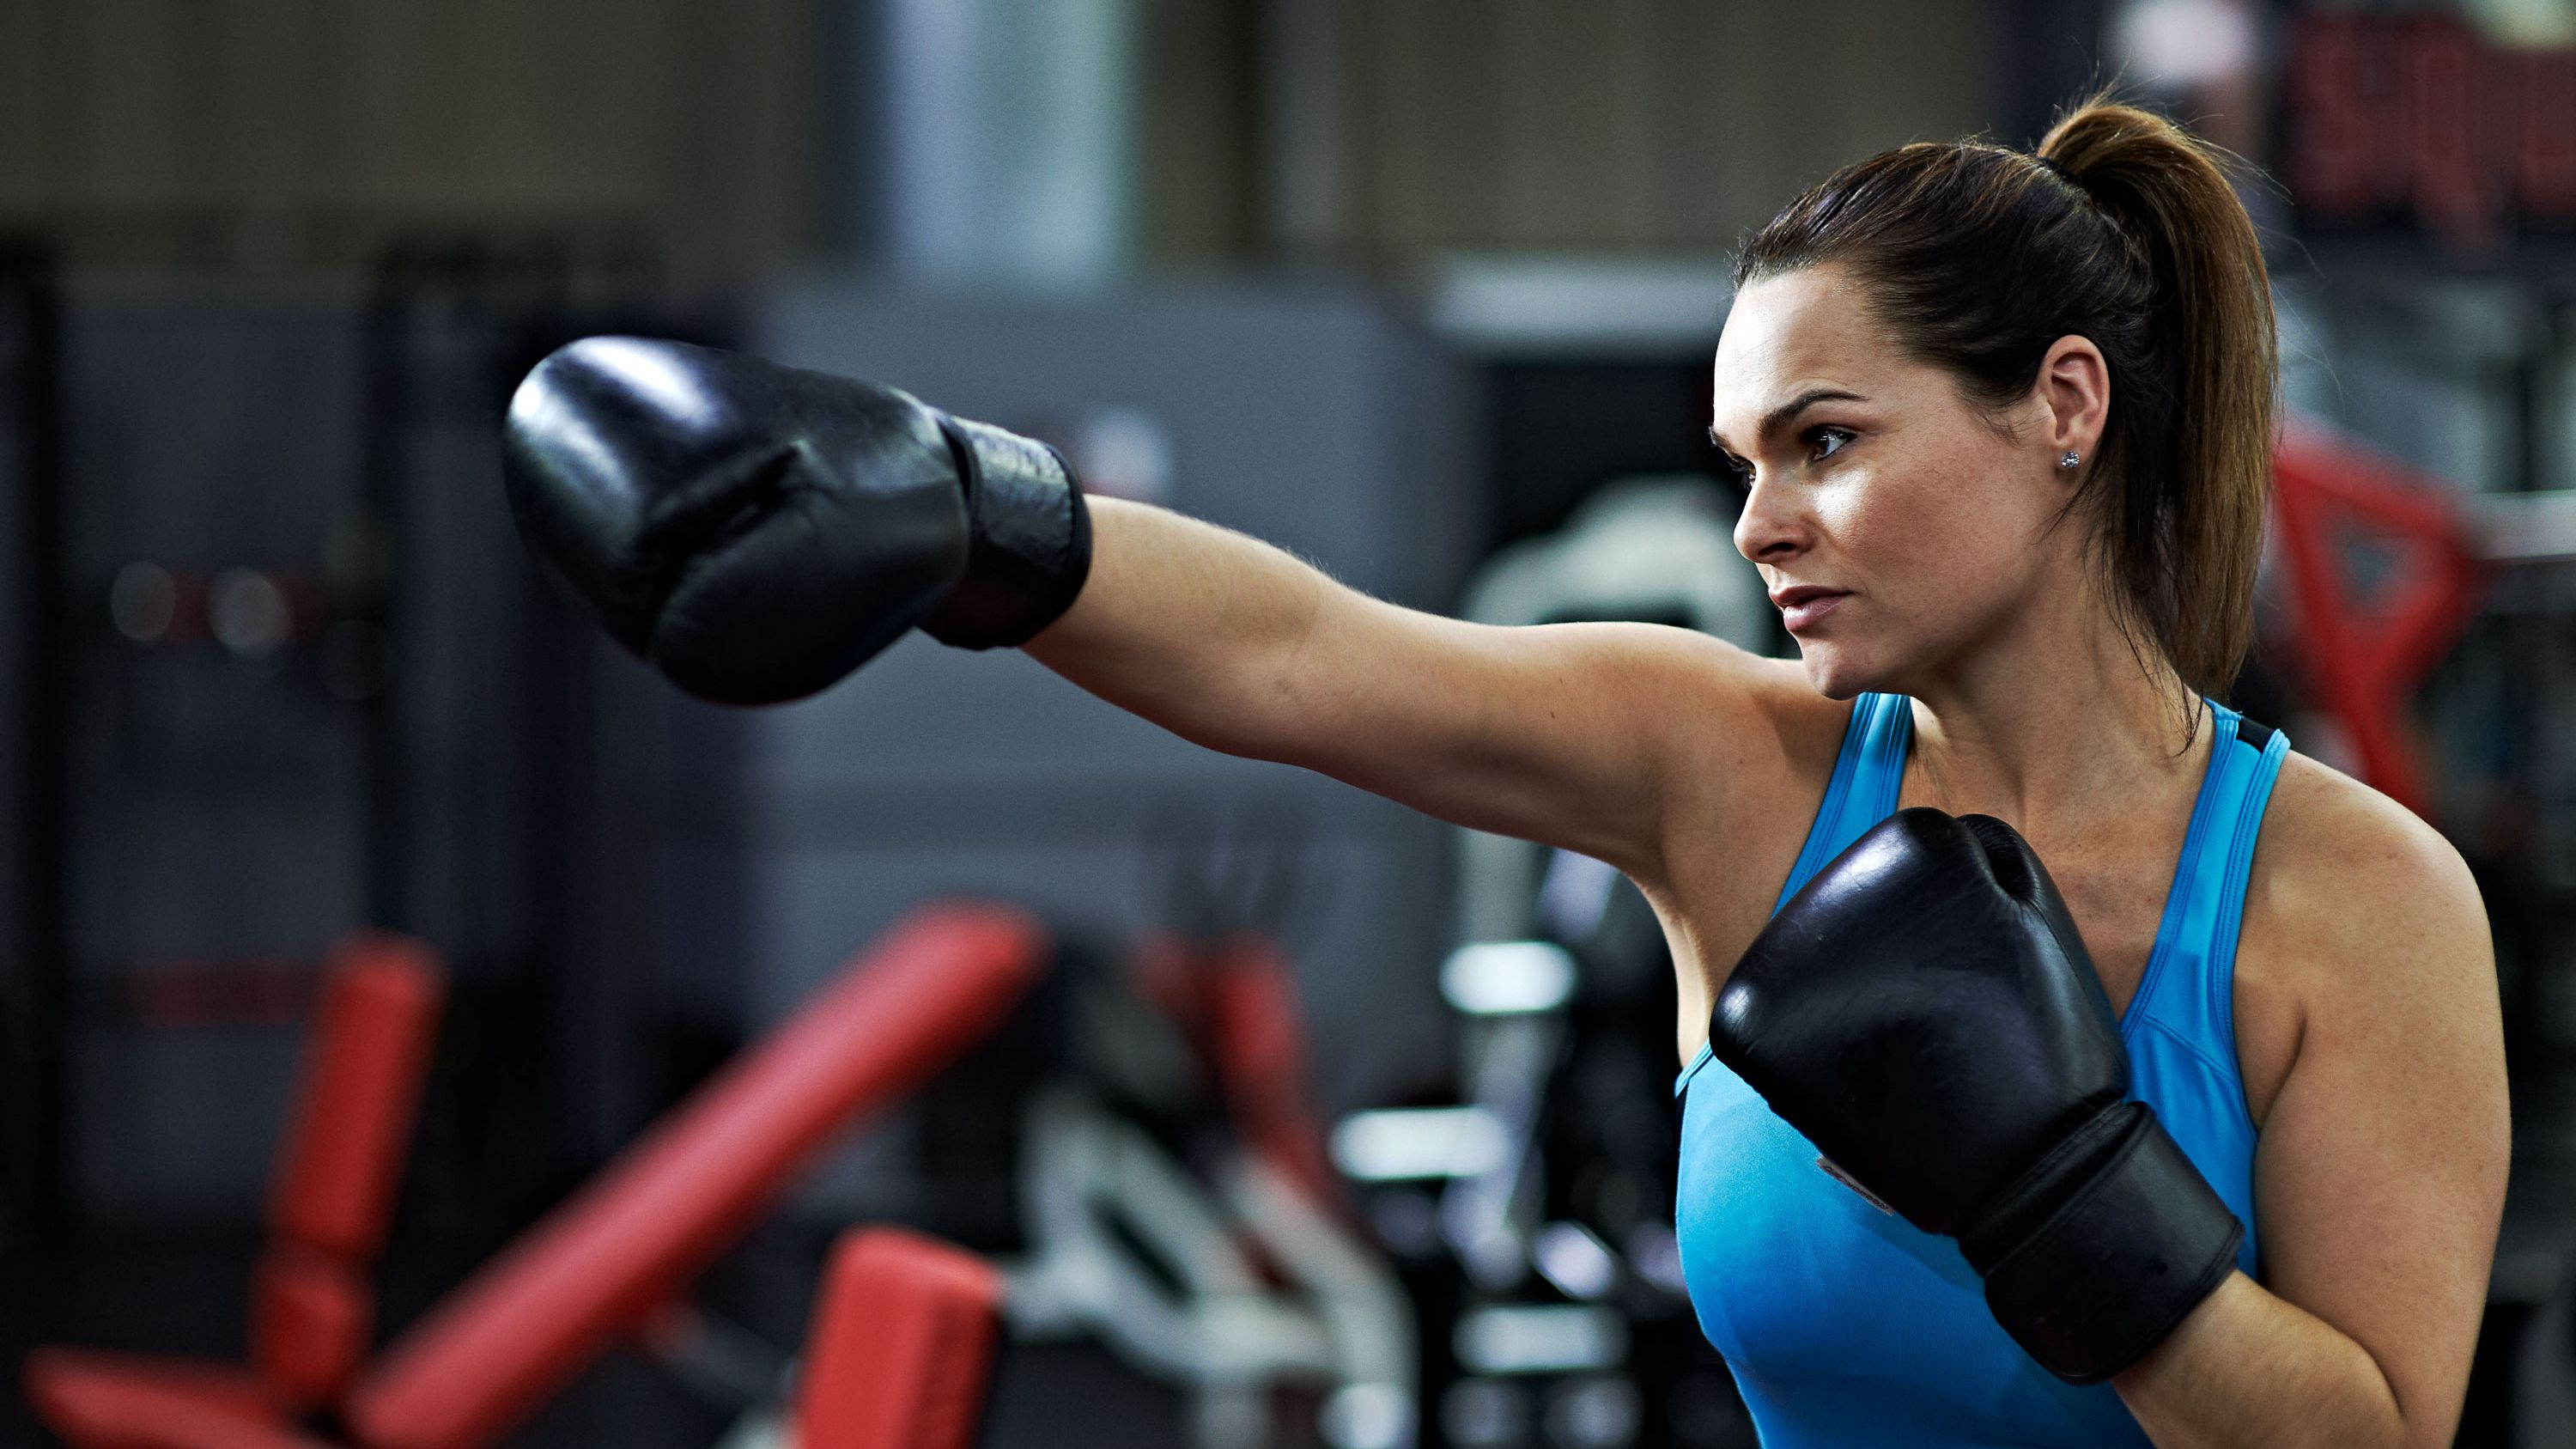 Best Gear for Home-Based Boxing Workouts